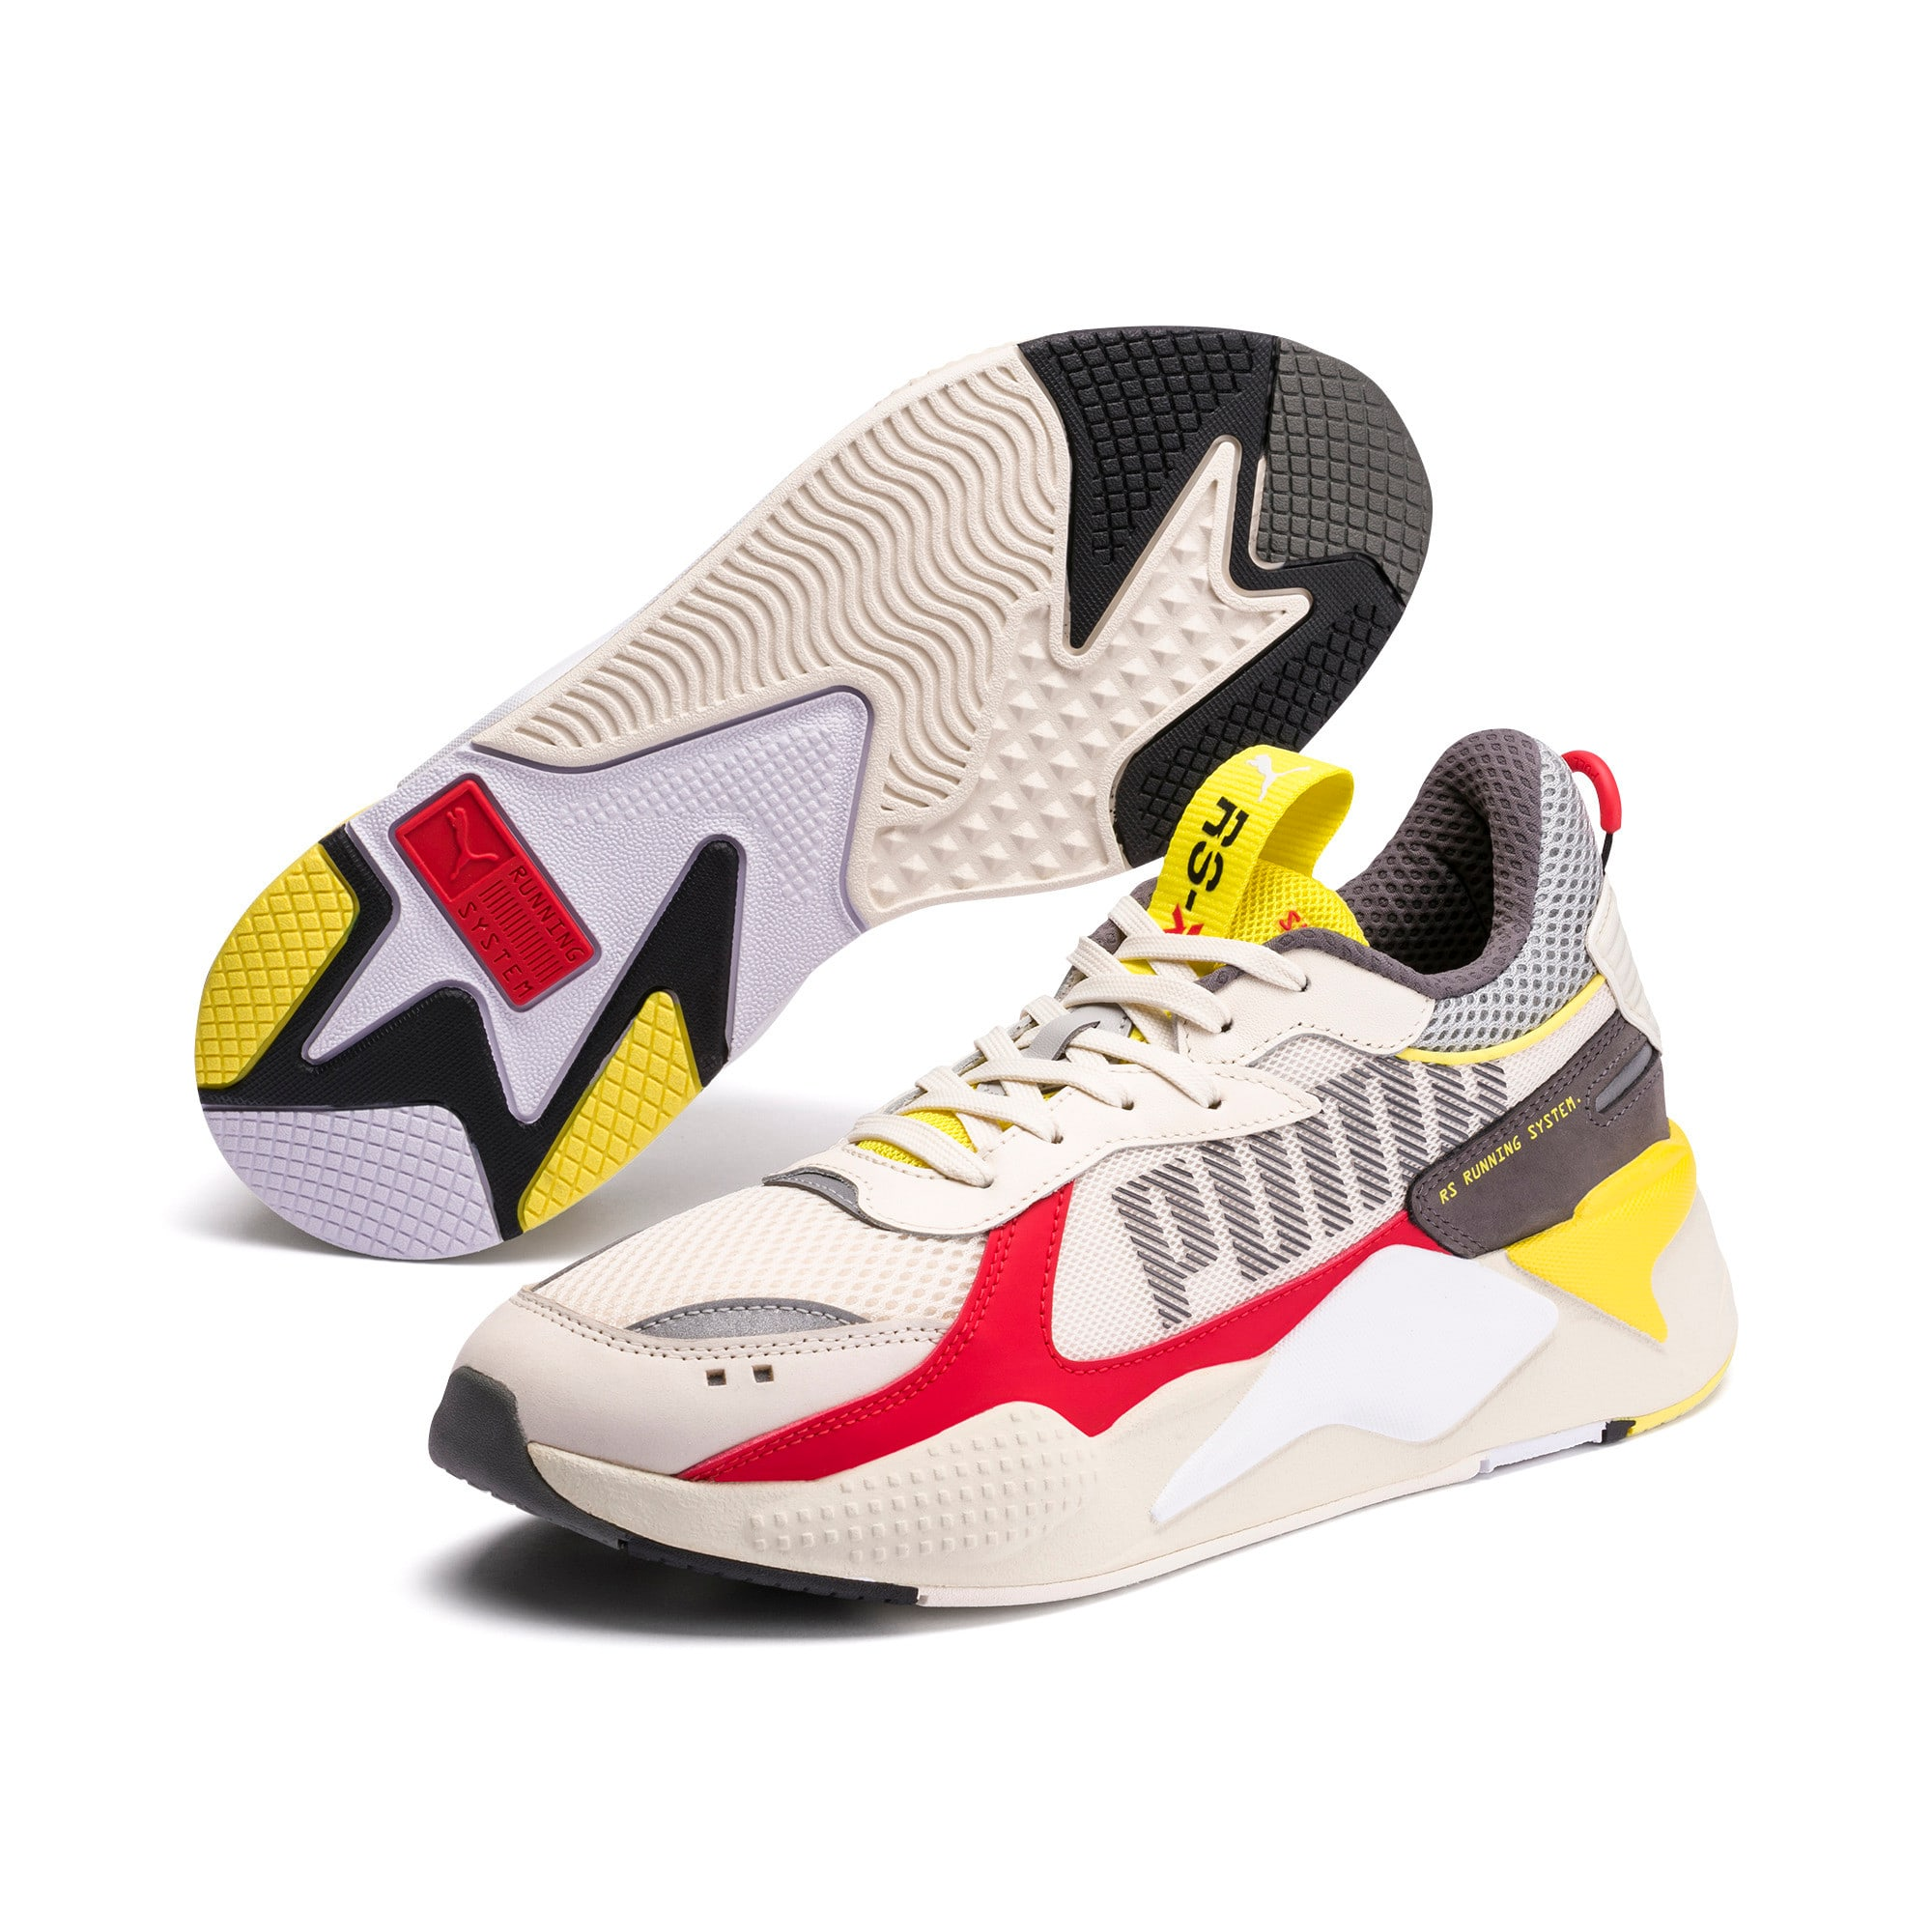 Thumbnail 2 of RS-X Bold Trainers, Whisper White-High Risk Red, medium